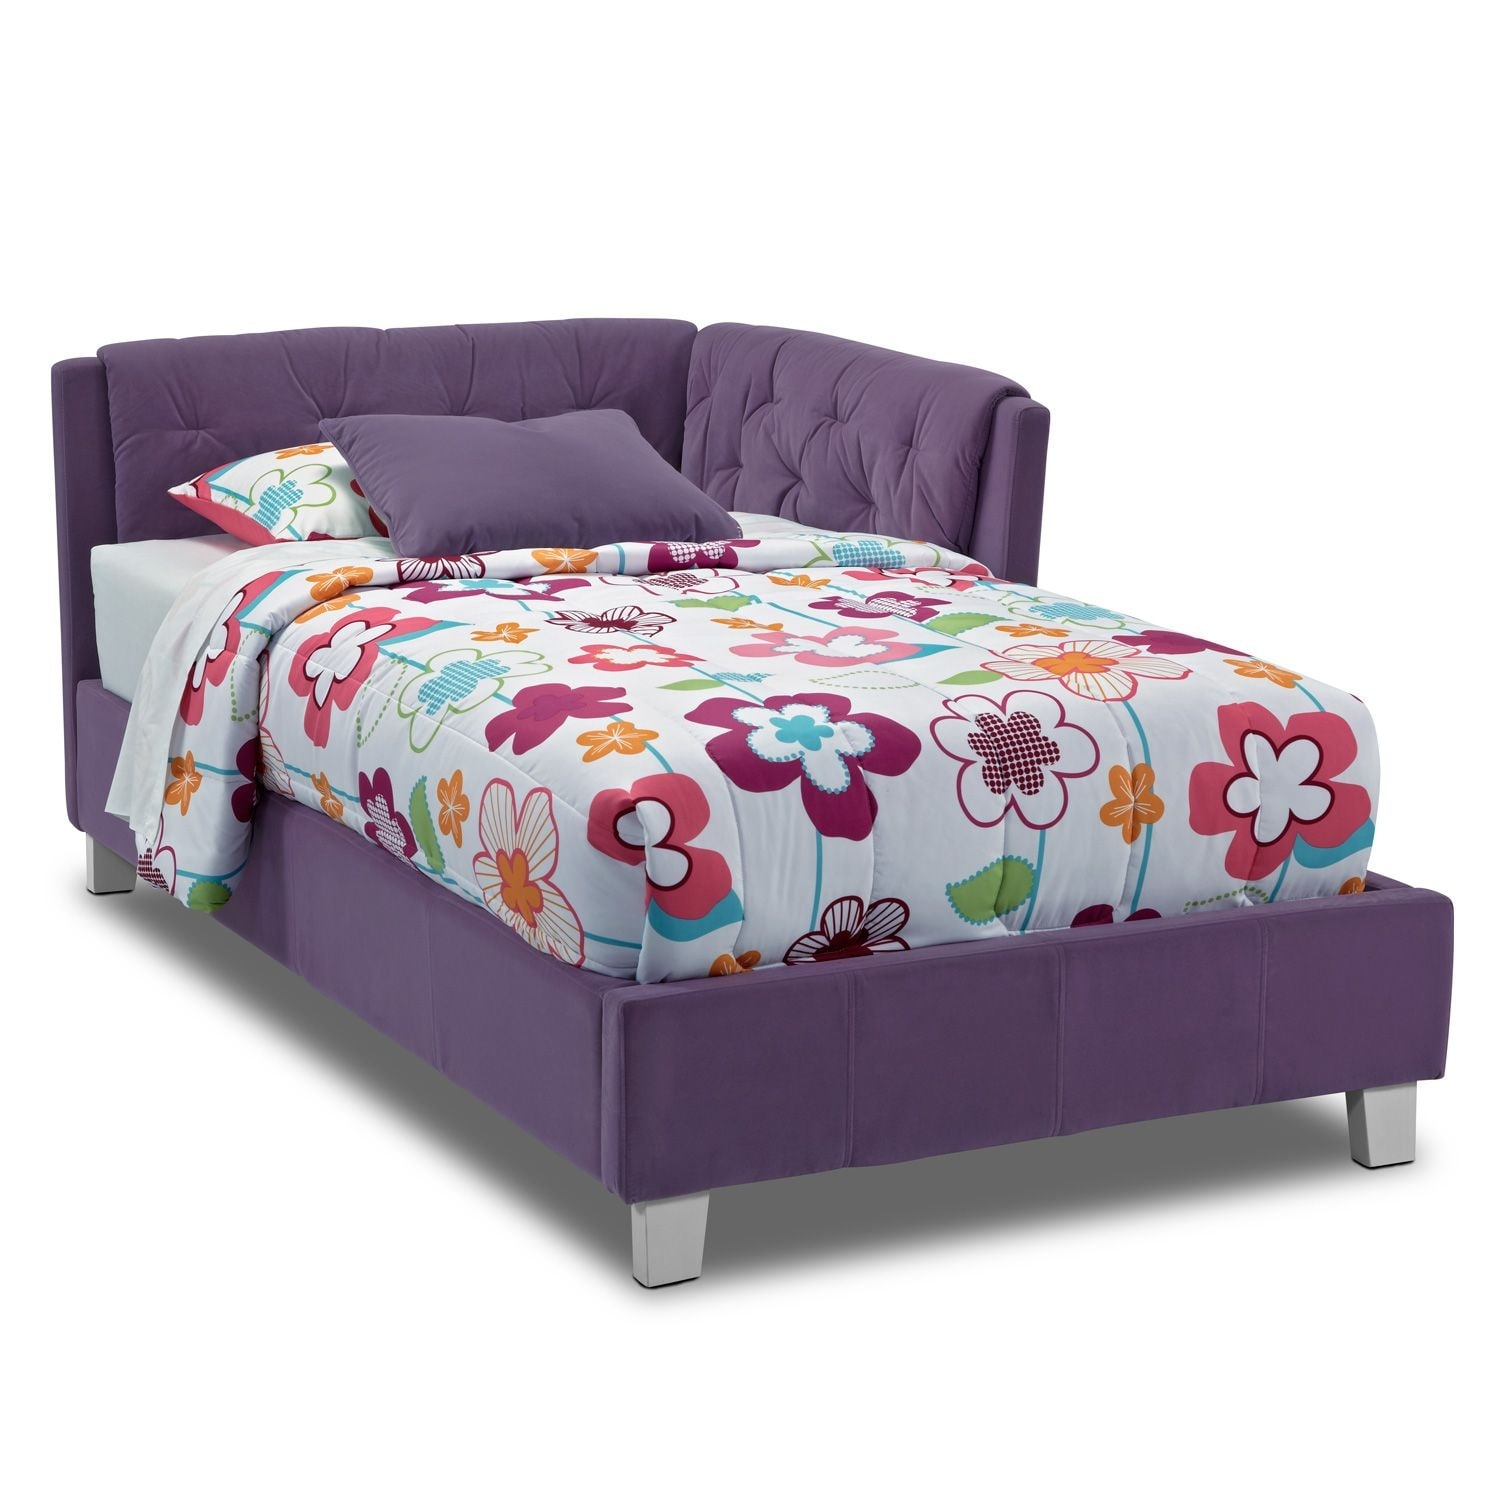 Jordan twin corner bed purple value city furniture for Furniture and beds